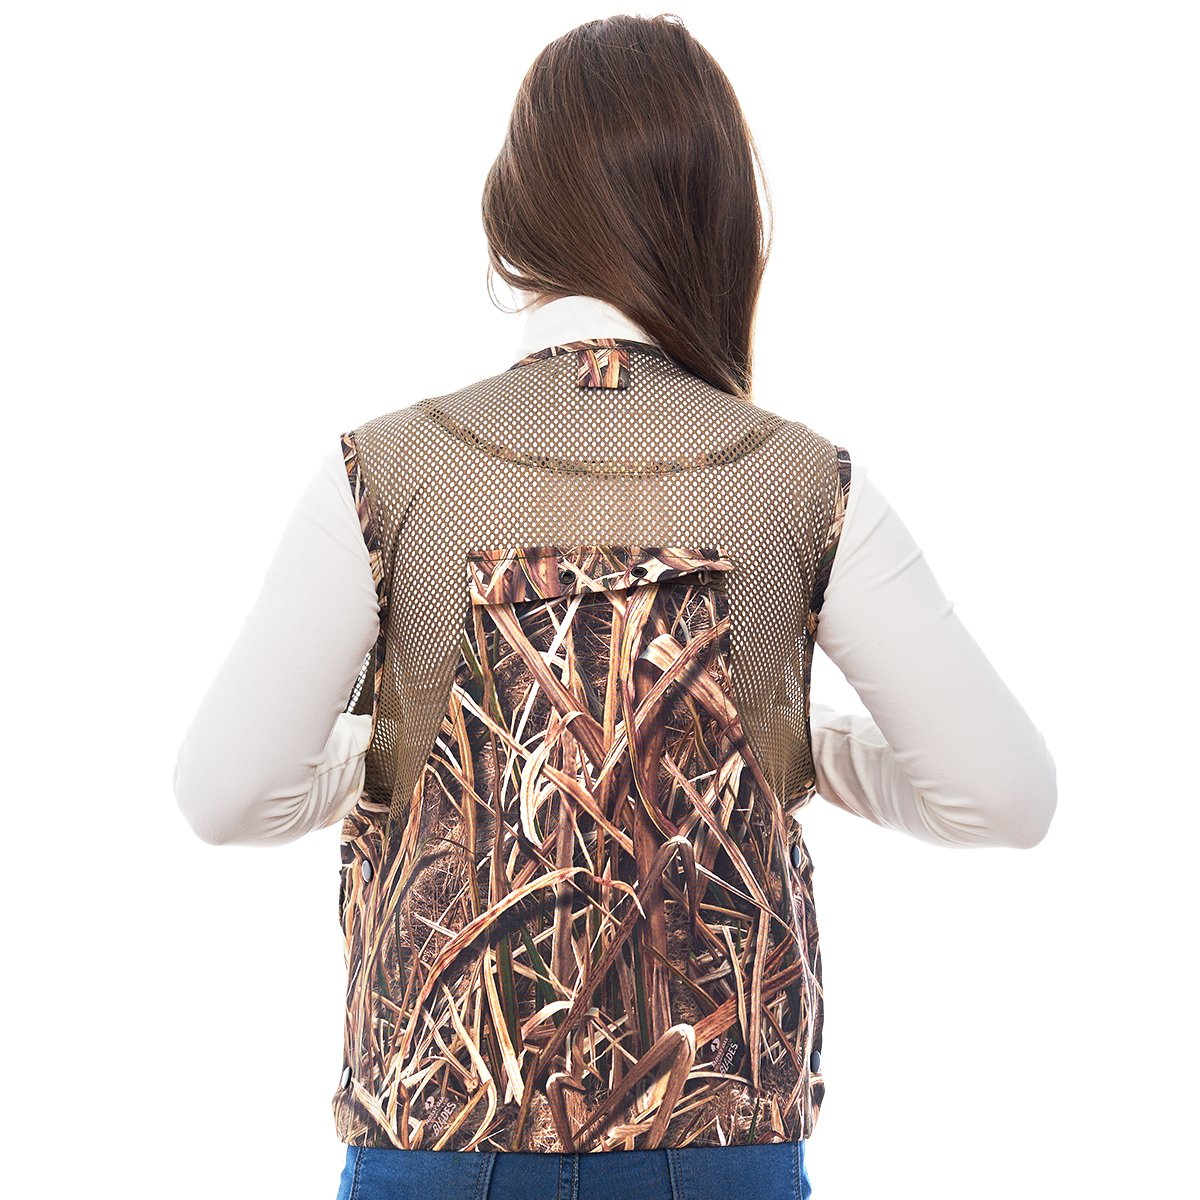 TrailCrest Kids Mossy Oak Deluxe Front Loader Hunting Vest, Medium, Shadow Grass by TrailCrest (Image #3)